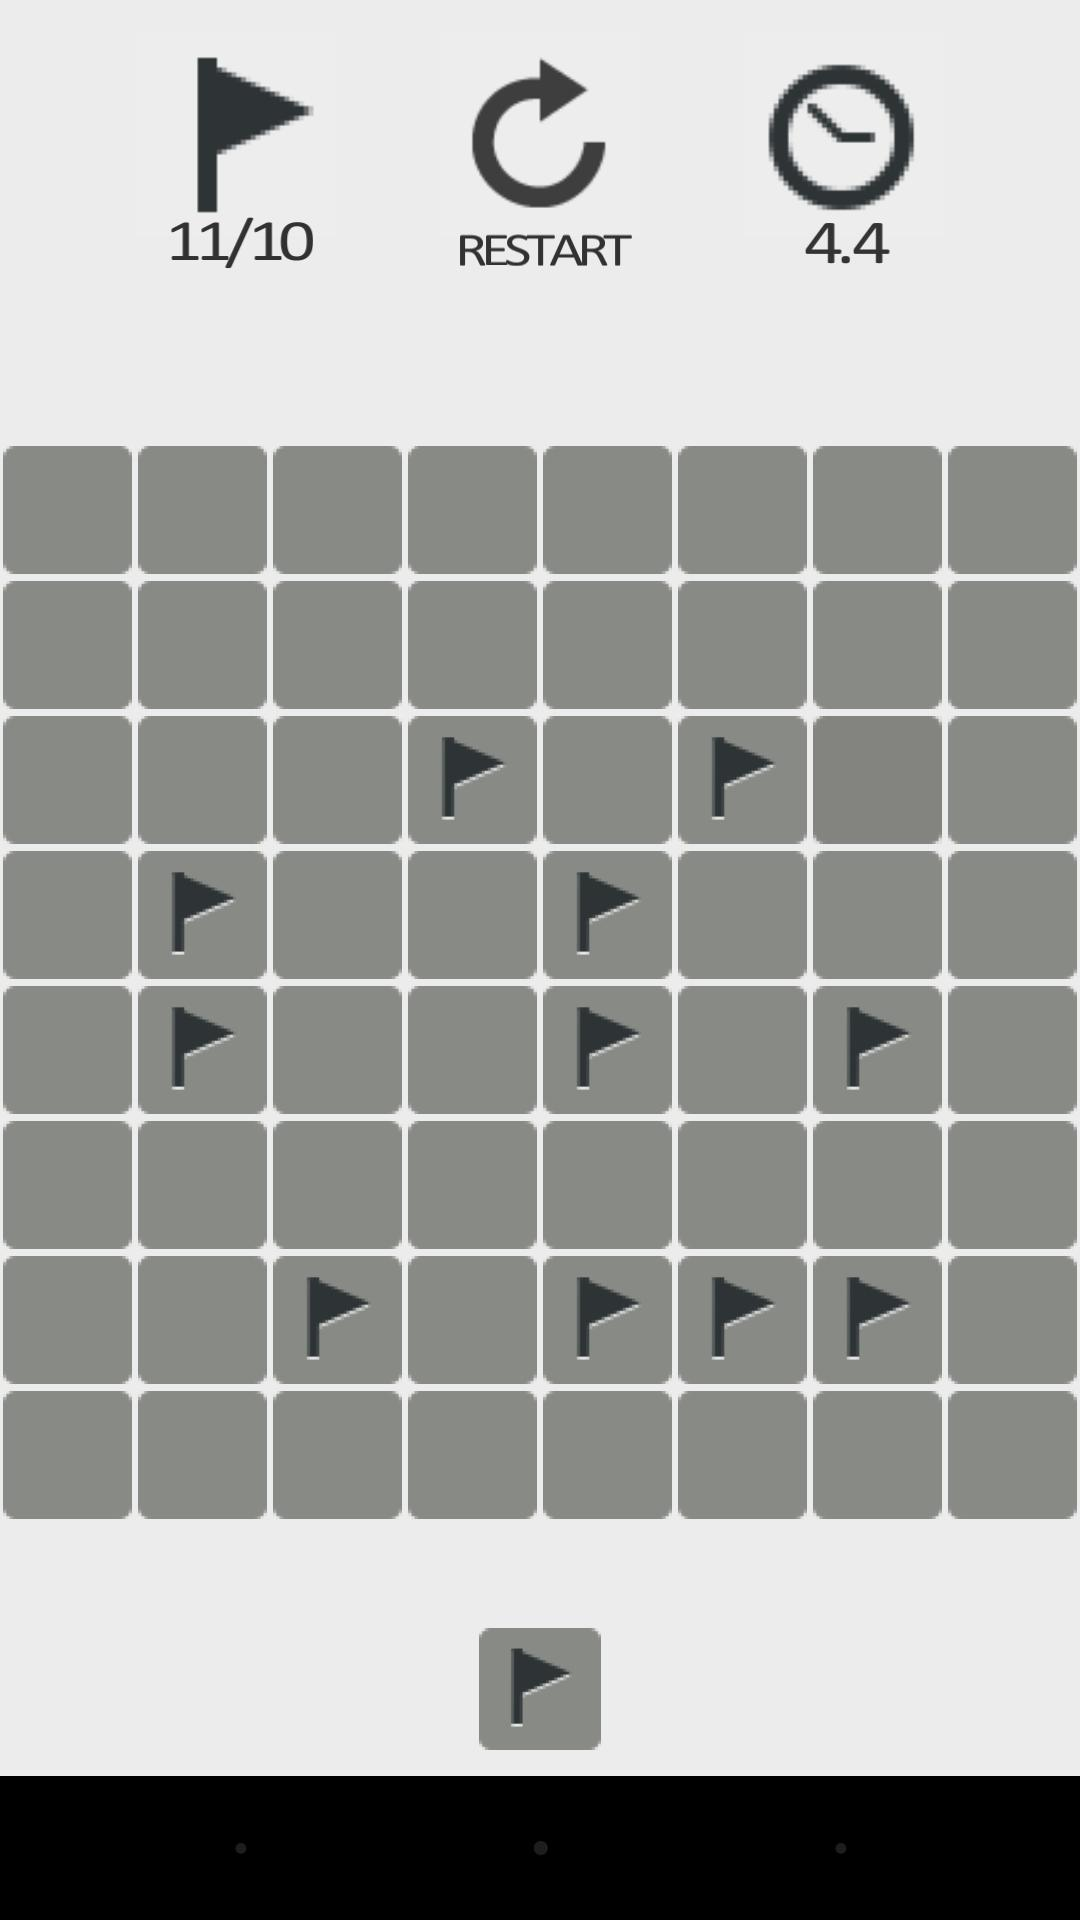 Minesweeper Windows Retro Game for Android - APK Download